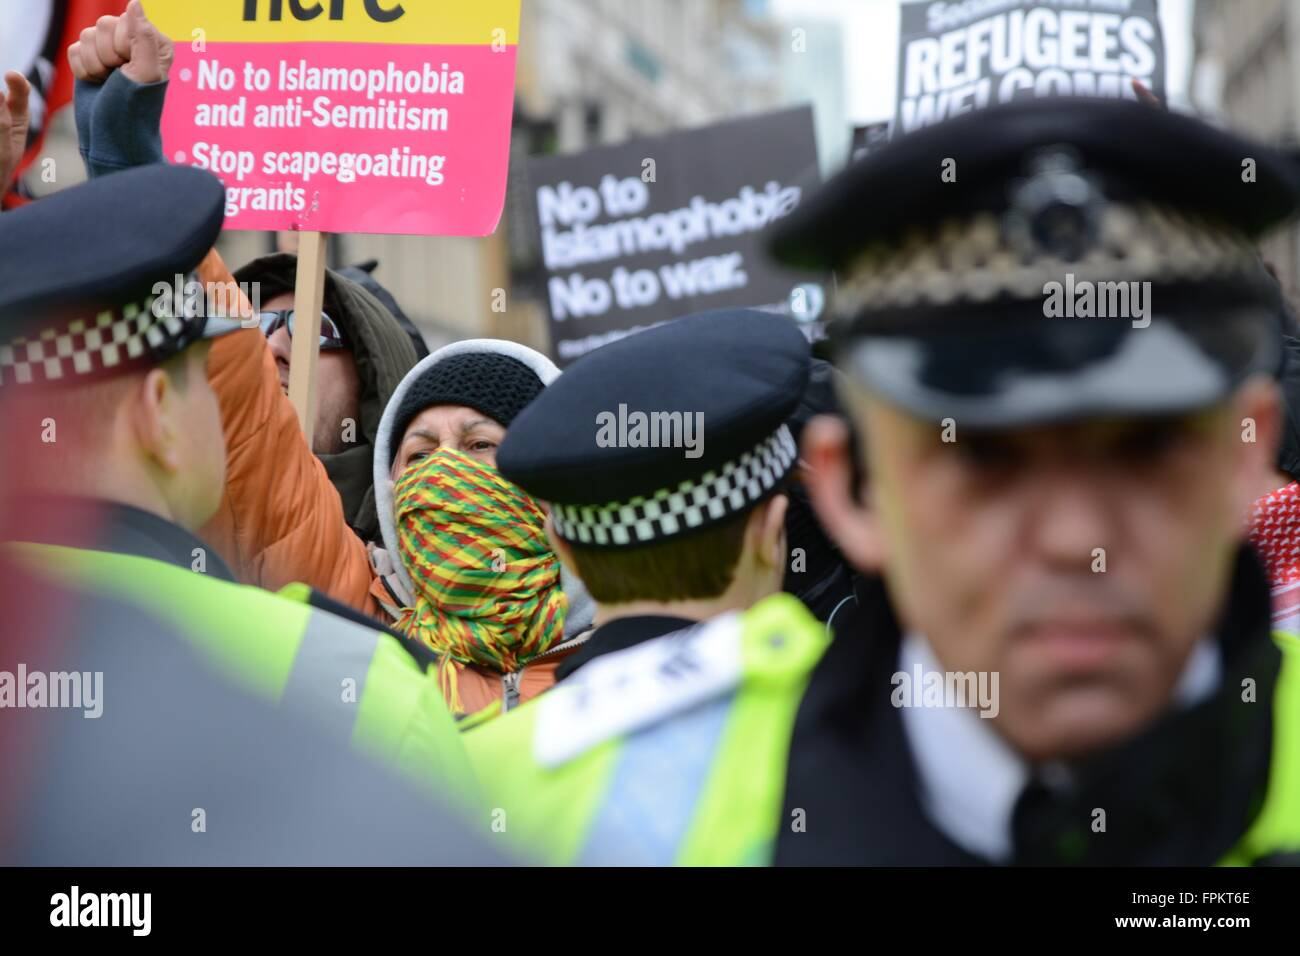 London, UK. March 19th 2016. Masked protester shouts towards another group who identify themselves as Britain First. - Stock Image